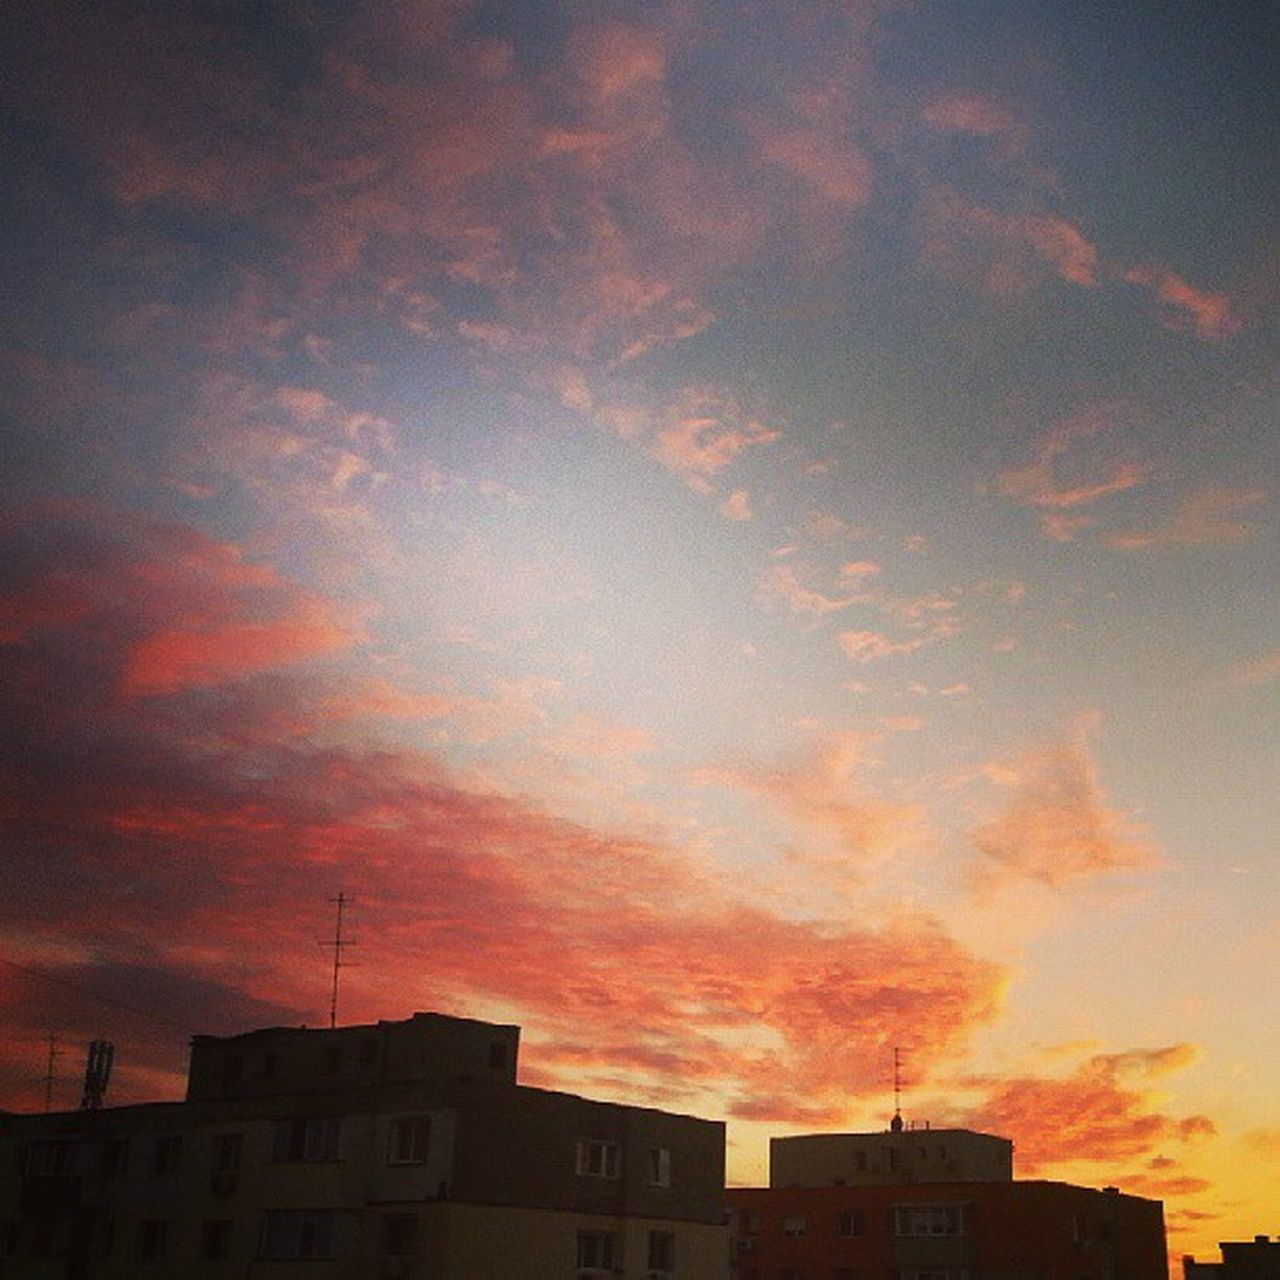 architecture, building exterior, built structure, sky, sunset, no people, cloud - sky, city, outdoors, cityscape, residential, day